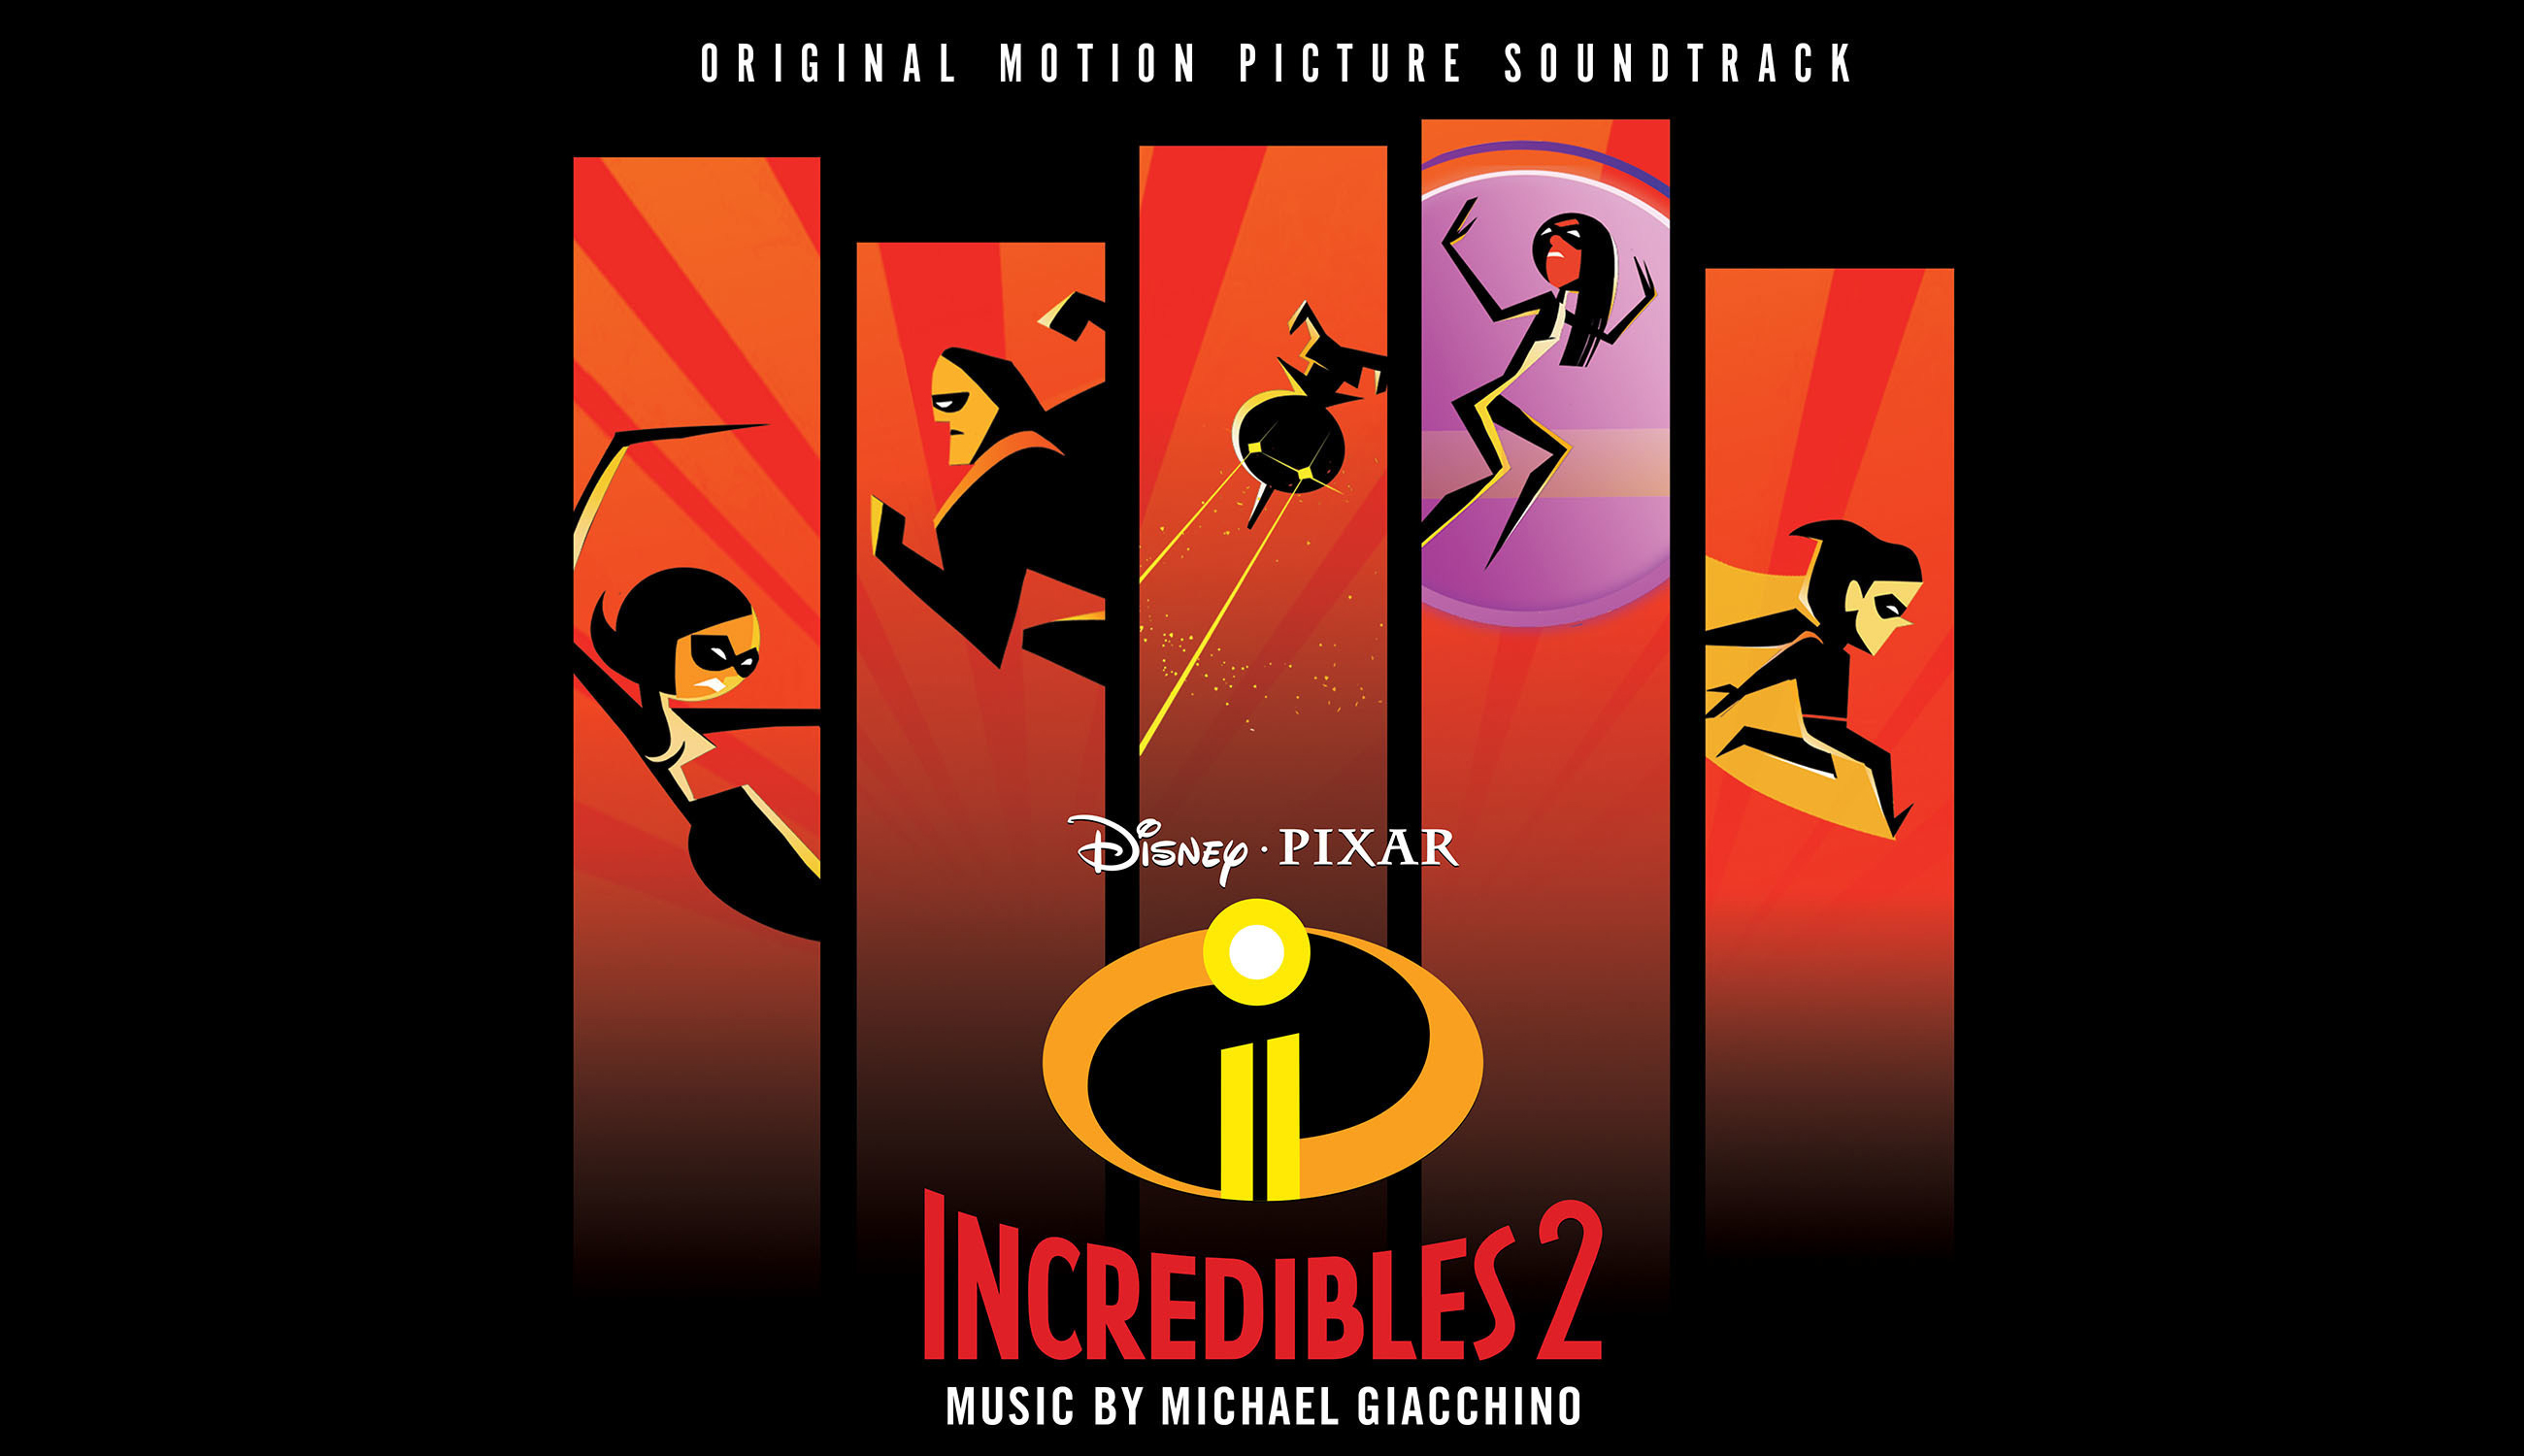 Disney•Pixar's Incredibles 2 Soundtrack Featuring Score By Oscar-Winning Composer Michael Giacchino Available